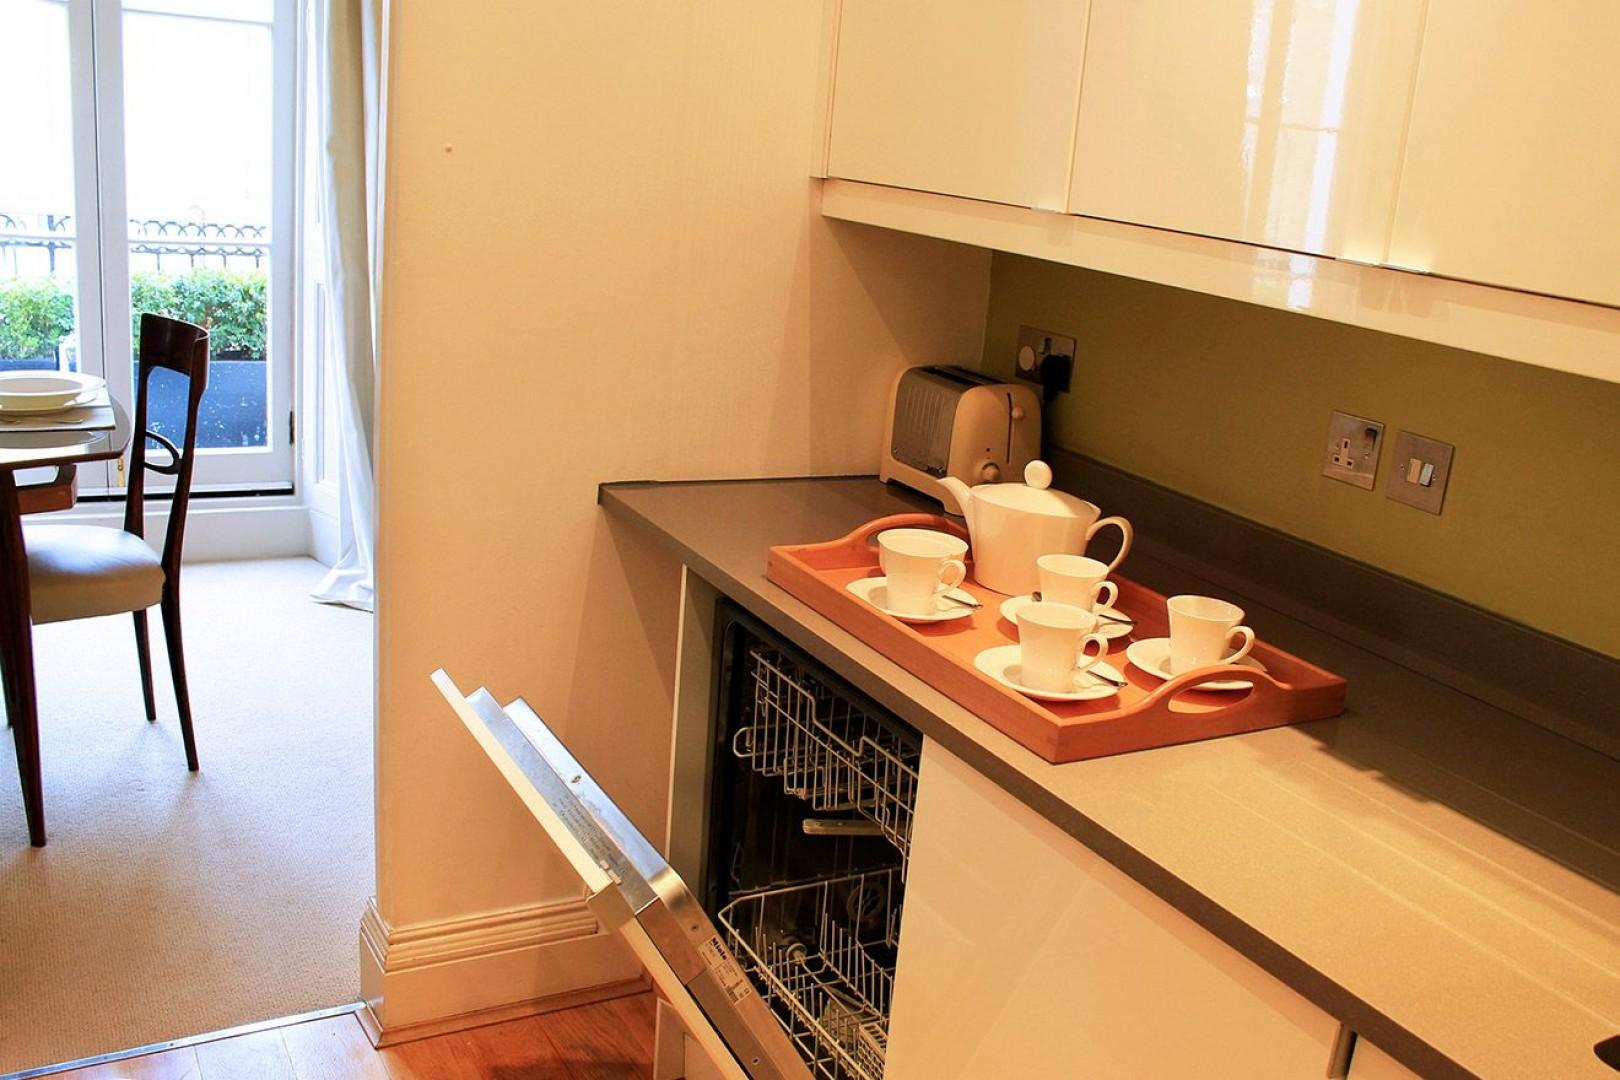 Kitchen is conveniently located just off dining room